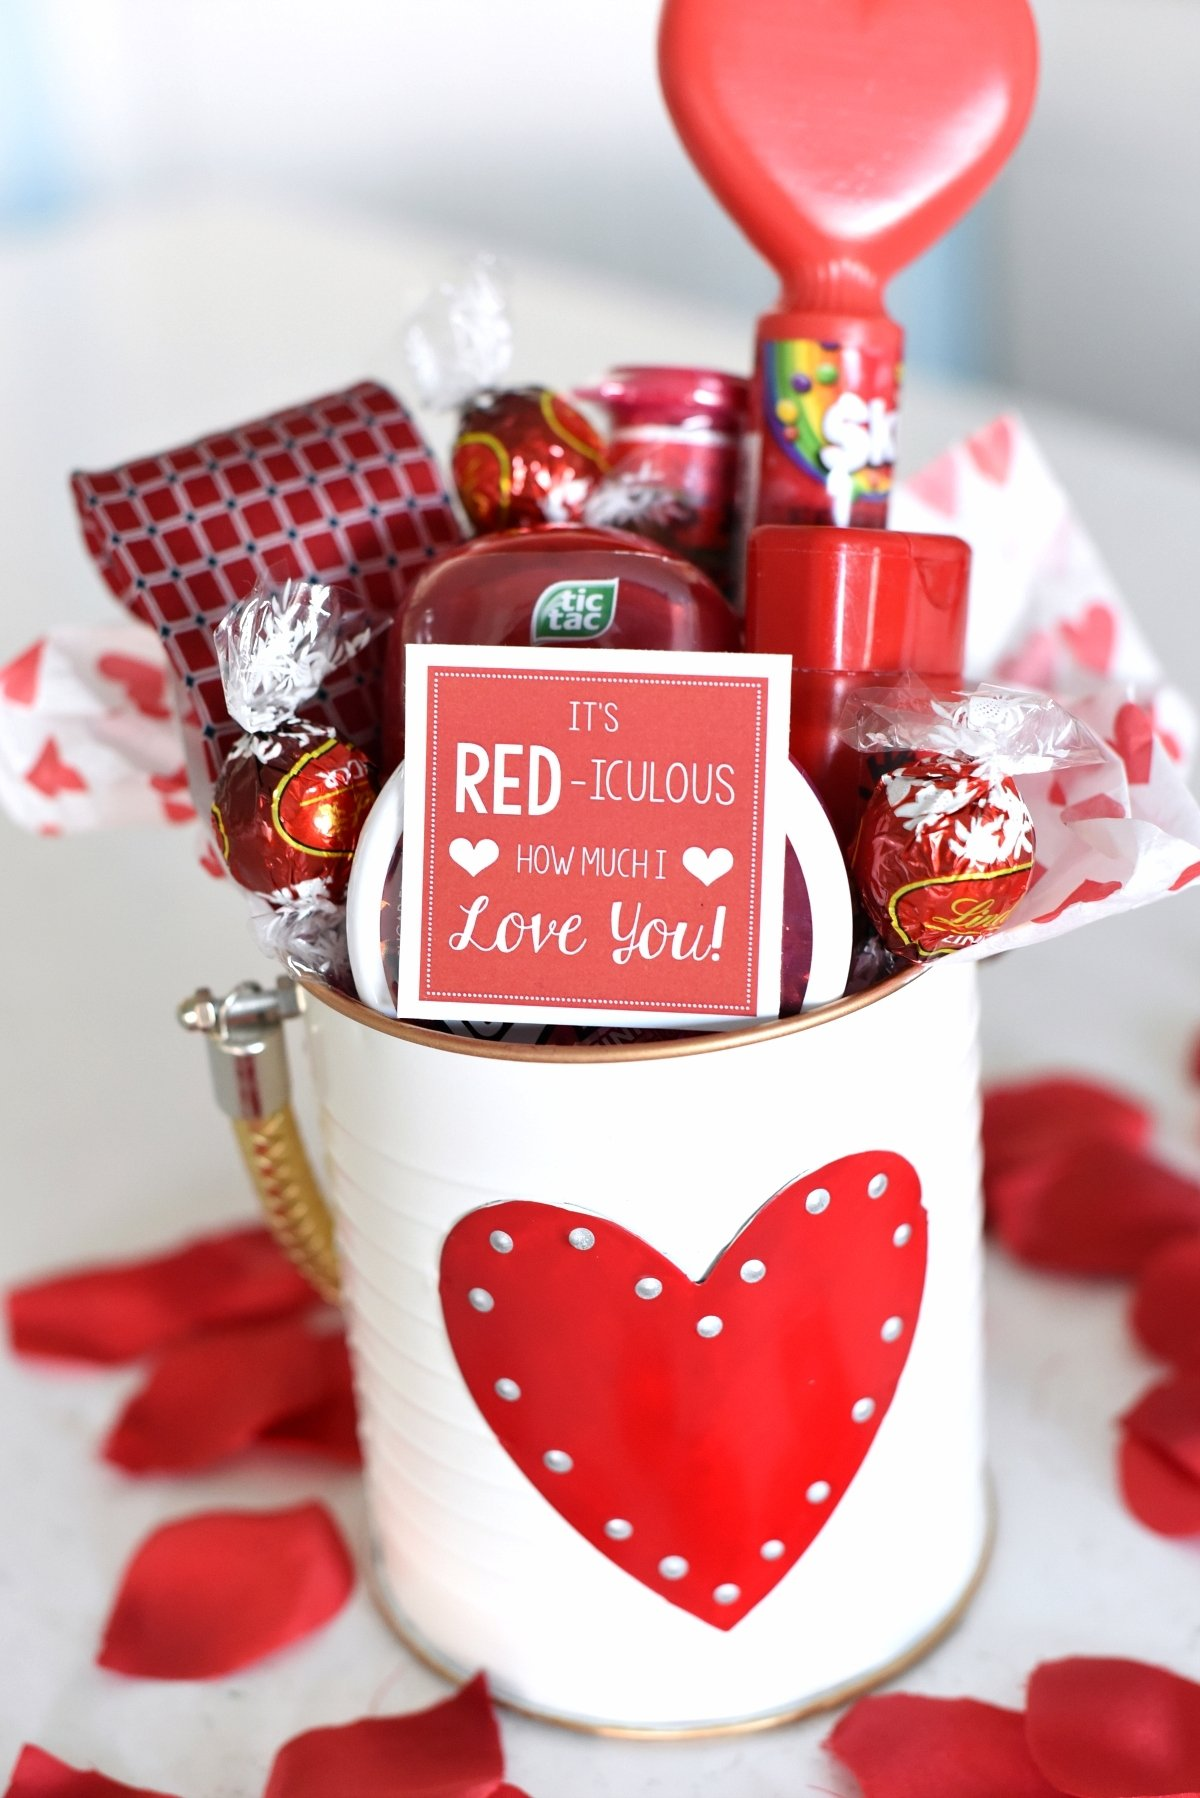 10 Lovely Valentines Day Ideas For Husband cute valentines day gift idea red iculous basket 3